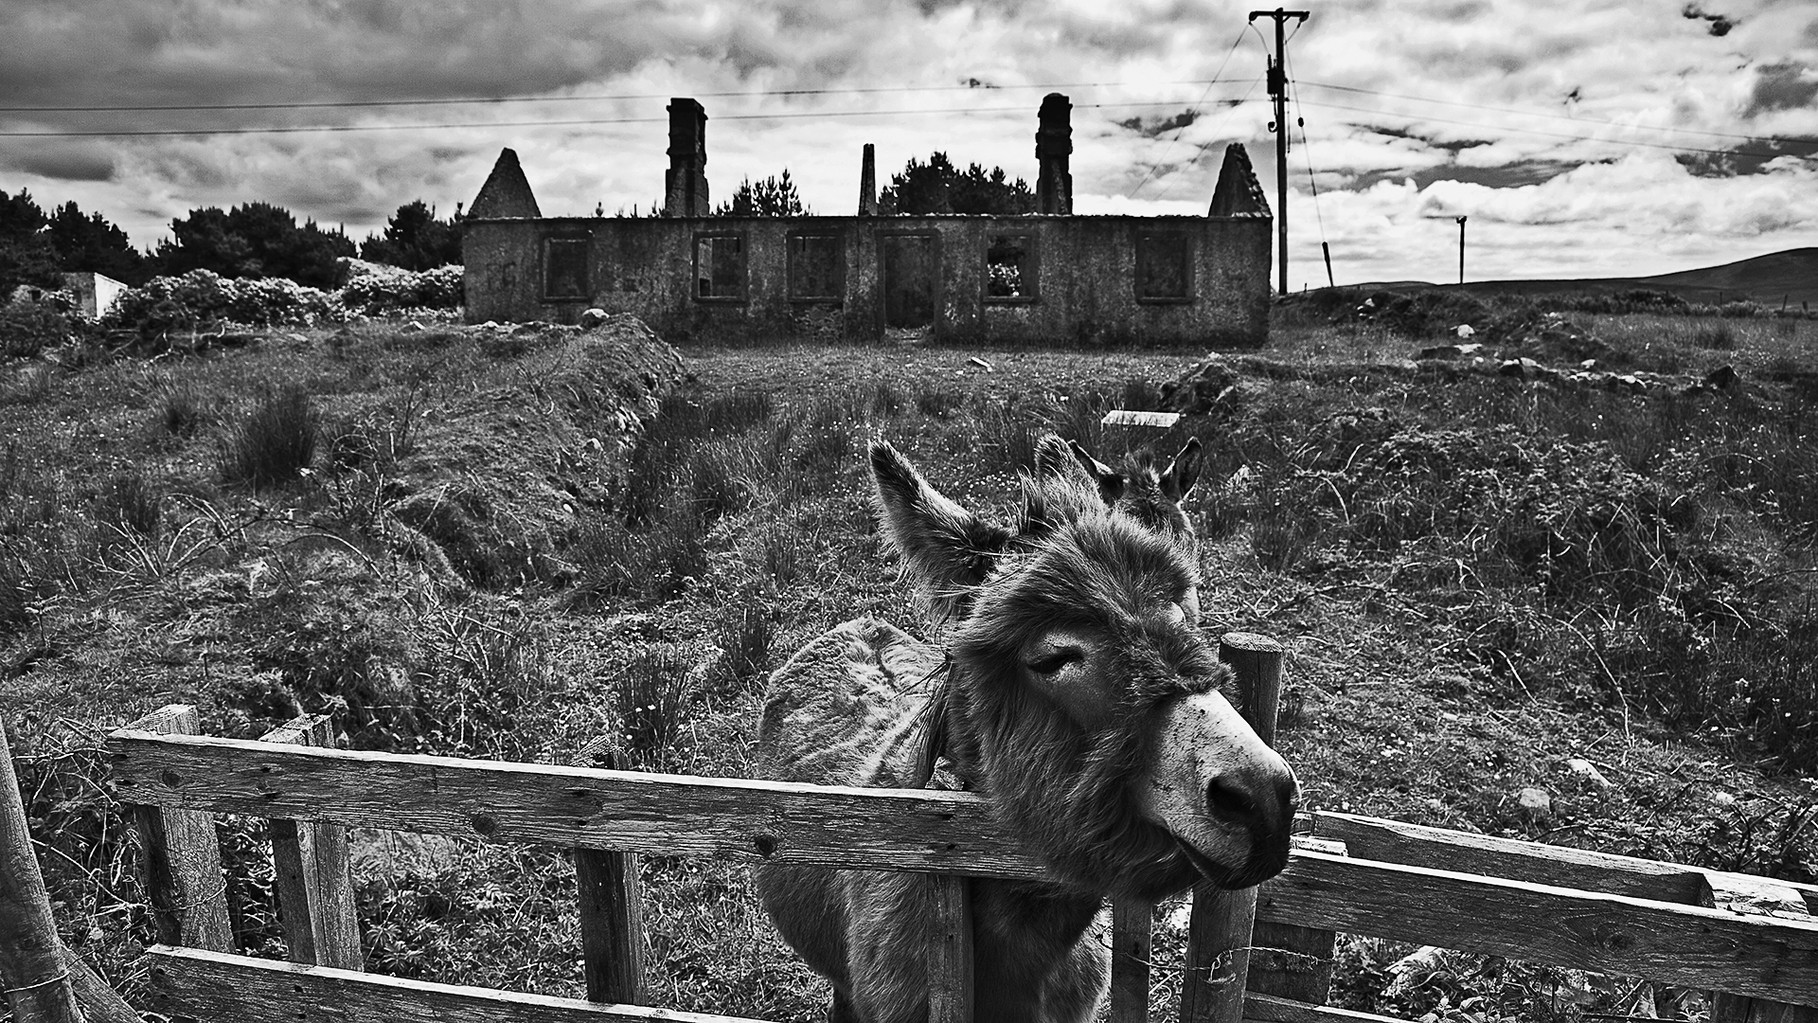 Home, sweet home - Donkey on Achill Island, County Mayo